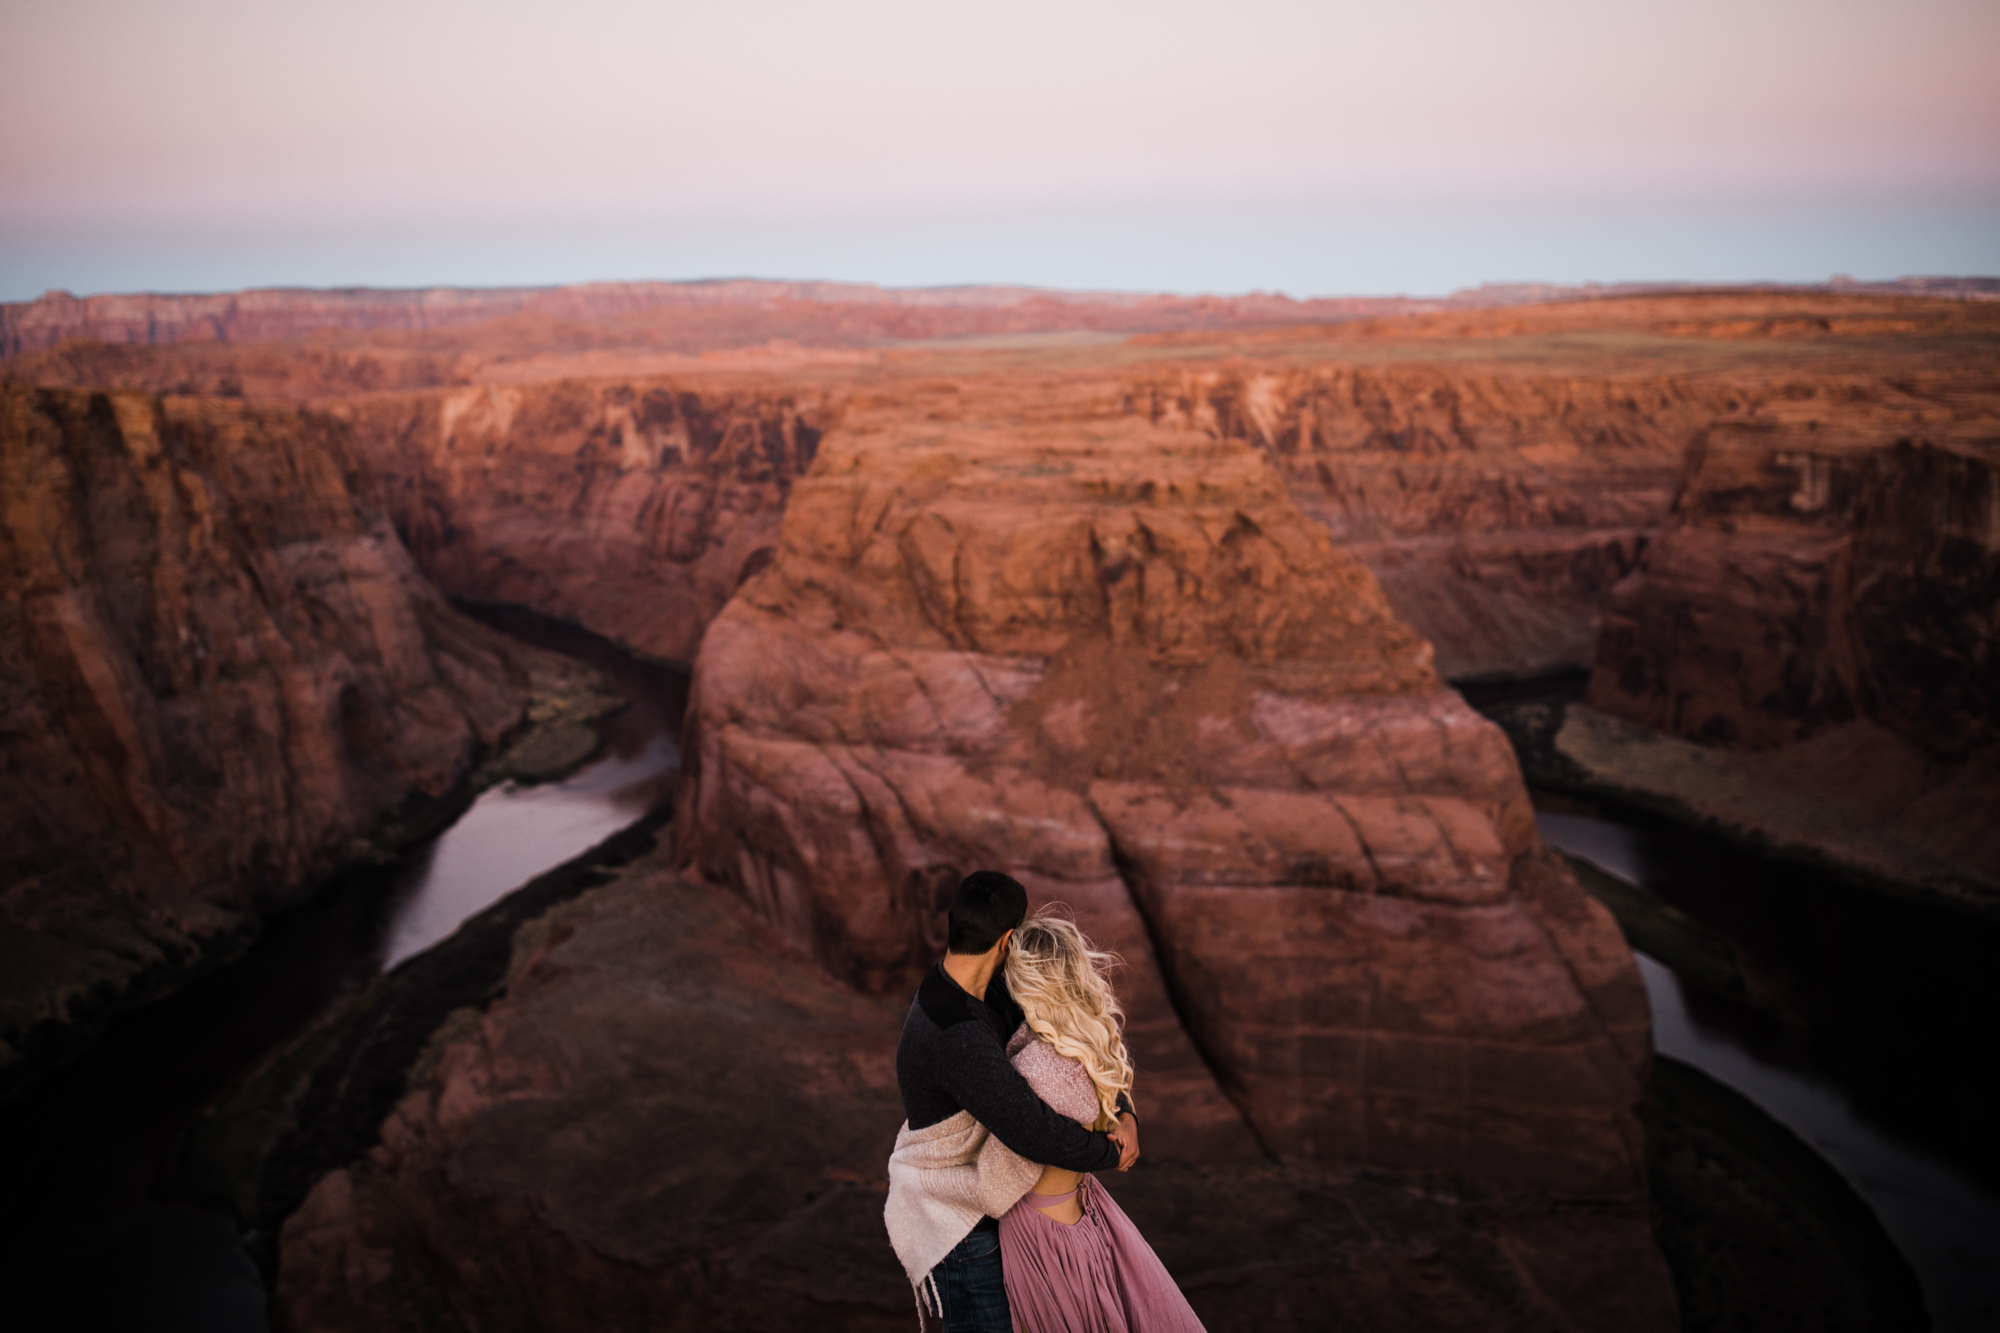 chelsea + jorge's day-after wedding adventure session in page, arizona | horseshoe bend | adventure elopement photographer | the hearnes adventure photography | www.thehearnes.com